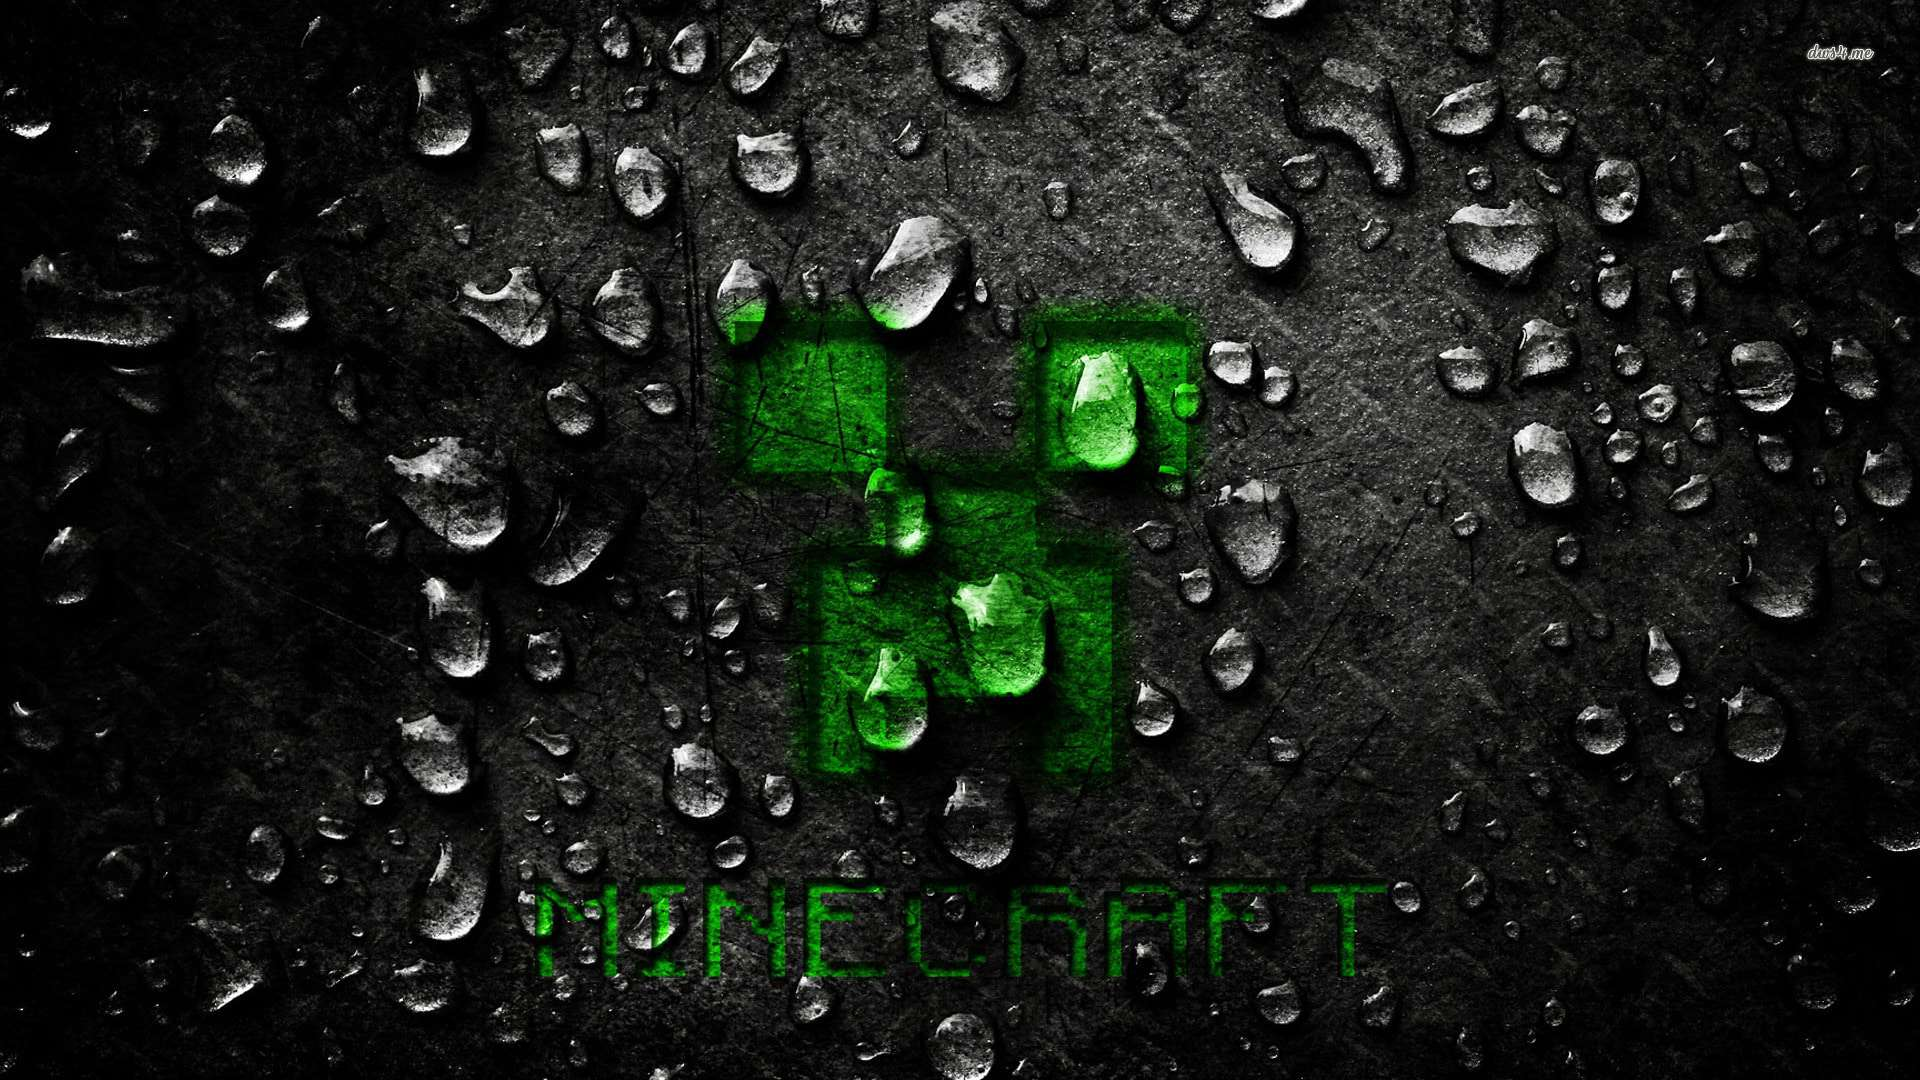 Minecraft creeper wallpaper rain cover backgorund